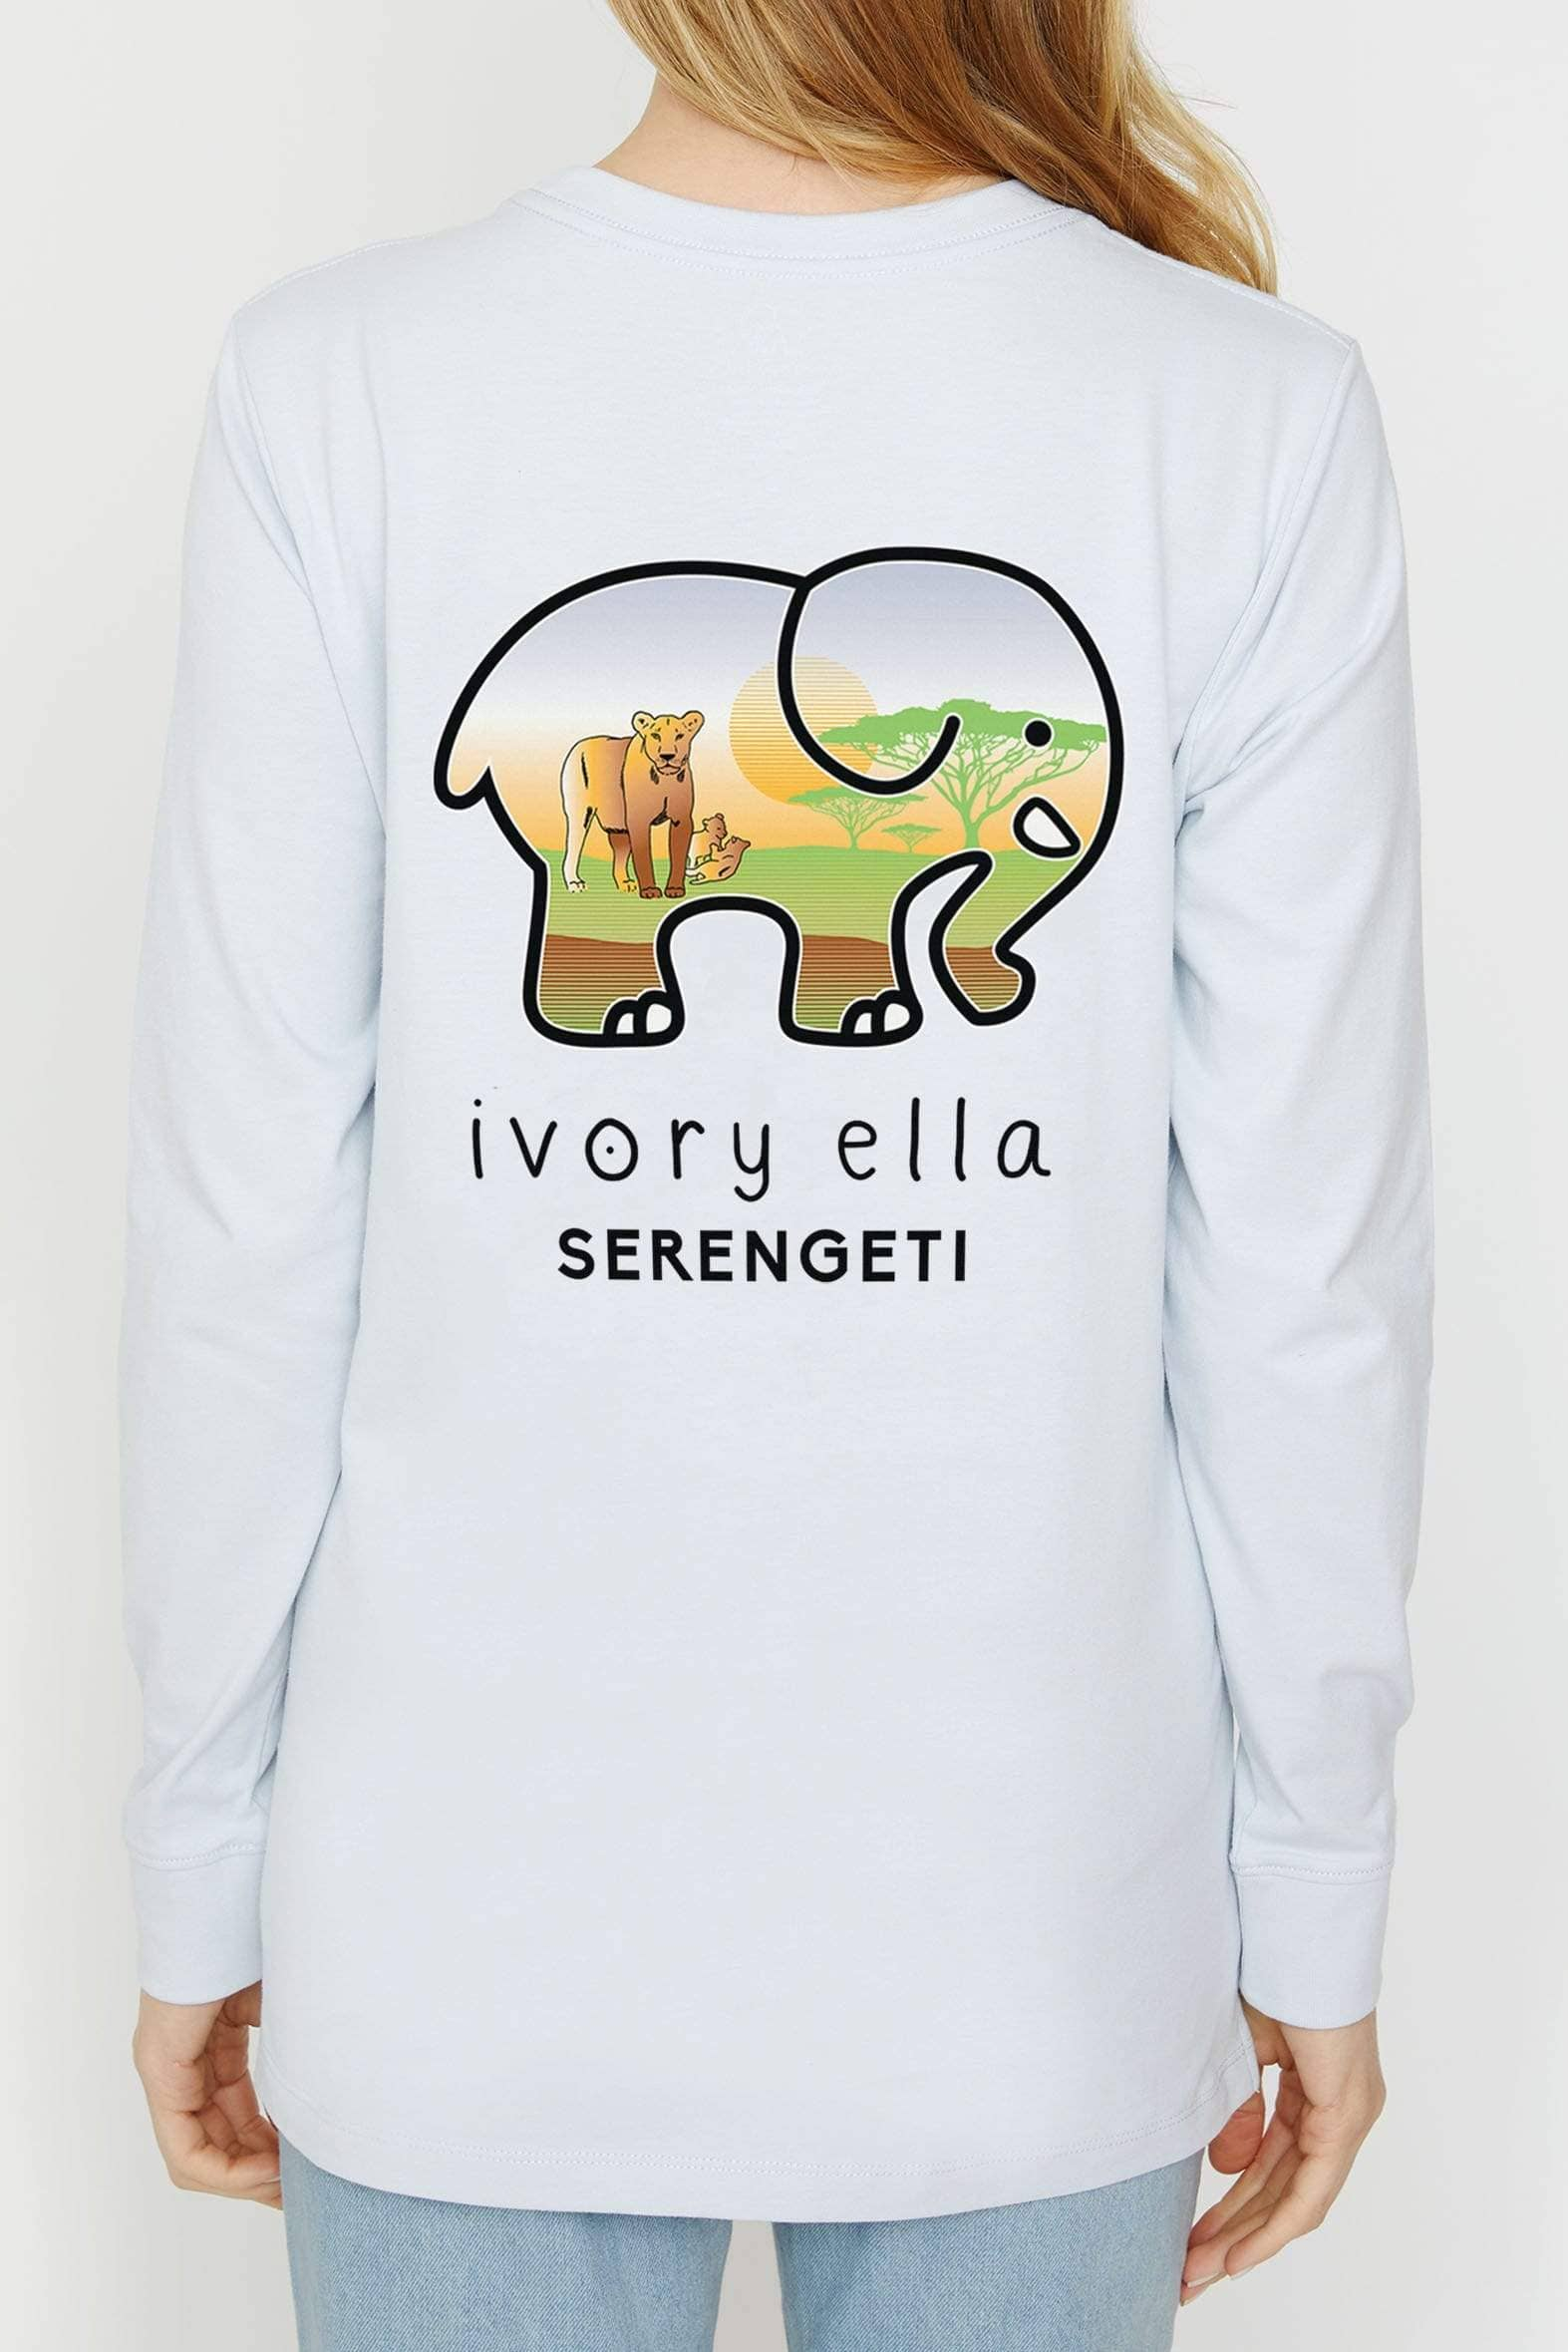 Moonstone Serengeti Lion Ella Tee - Ivory Ella - Women's Long Sleeve Shirts